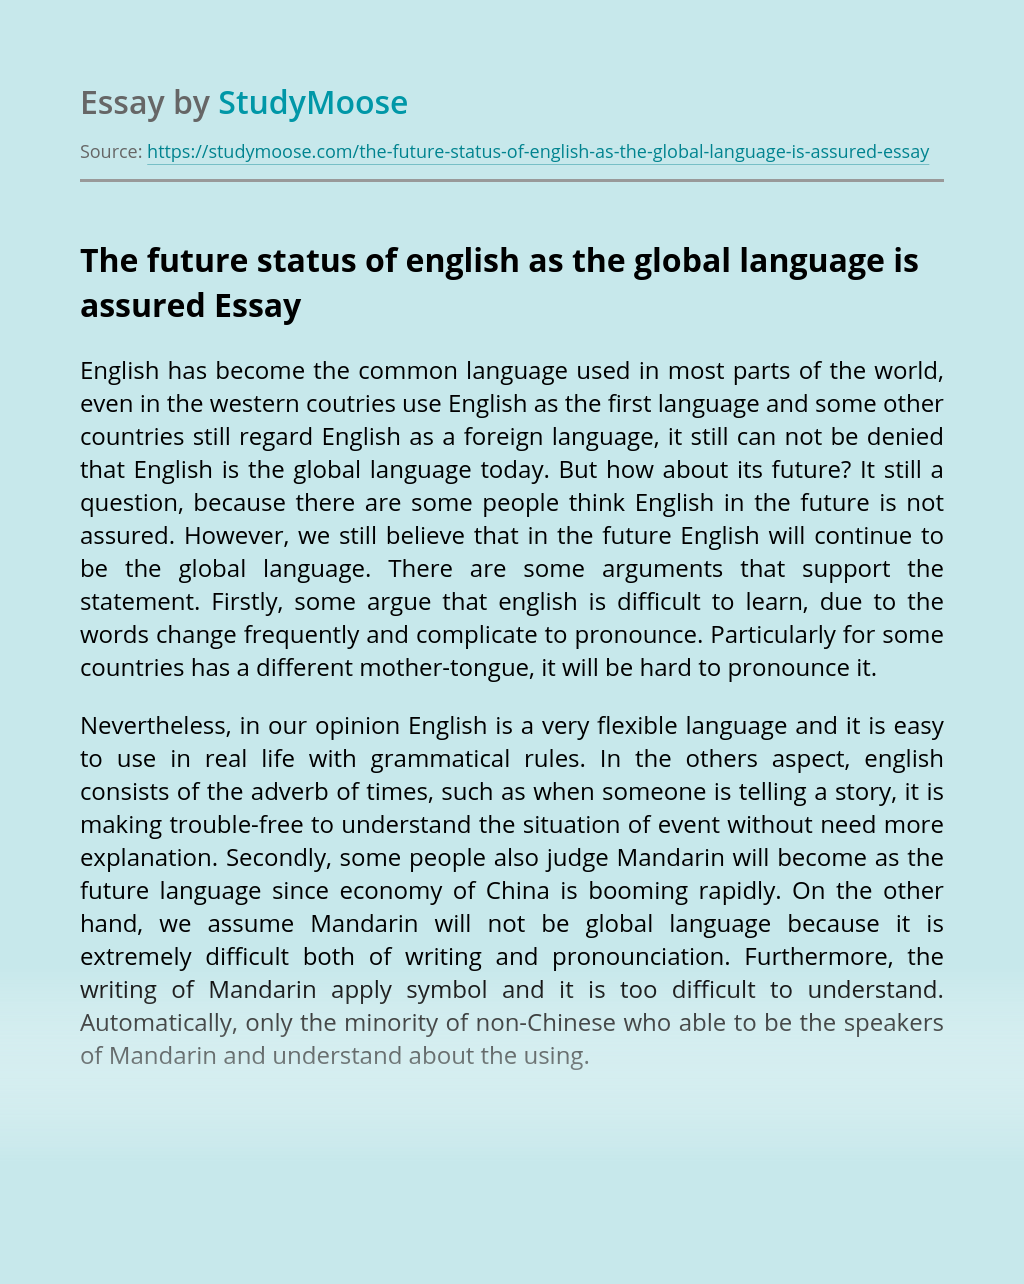 The future status of english as the global language is assured